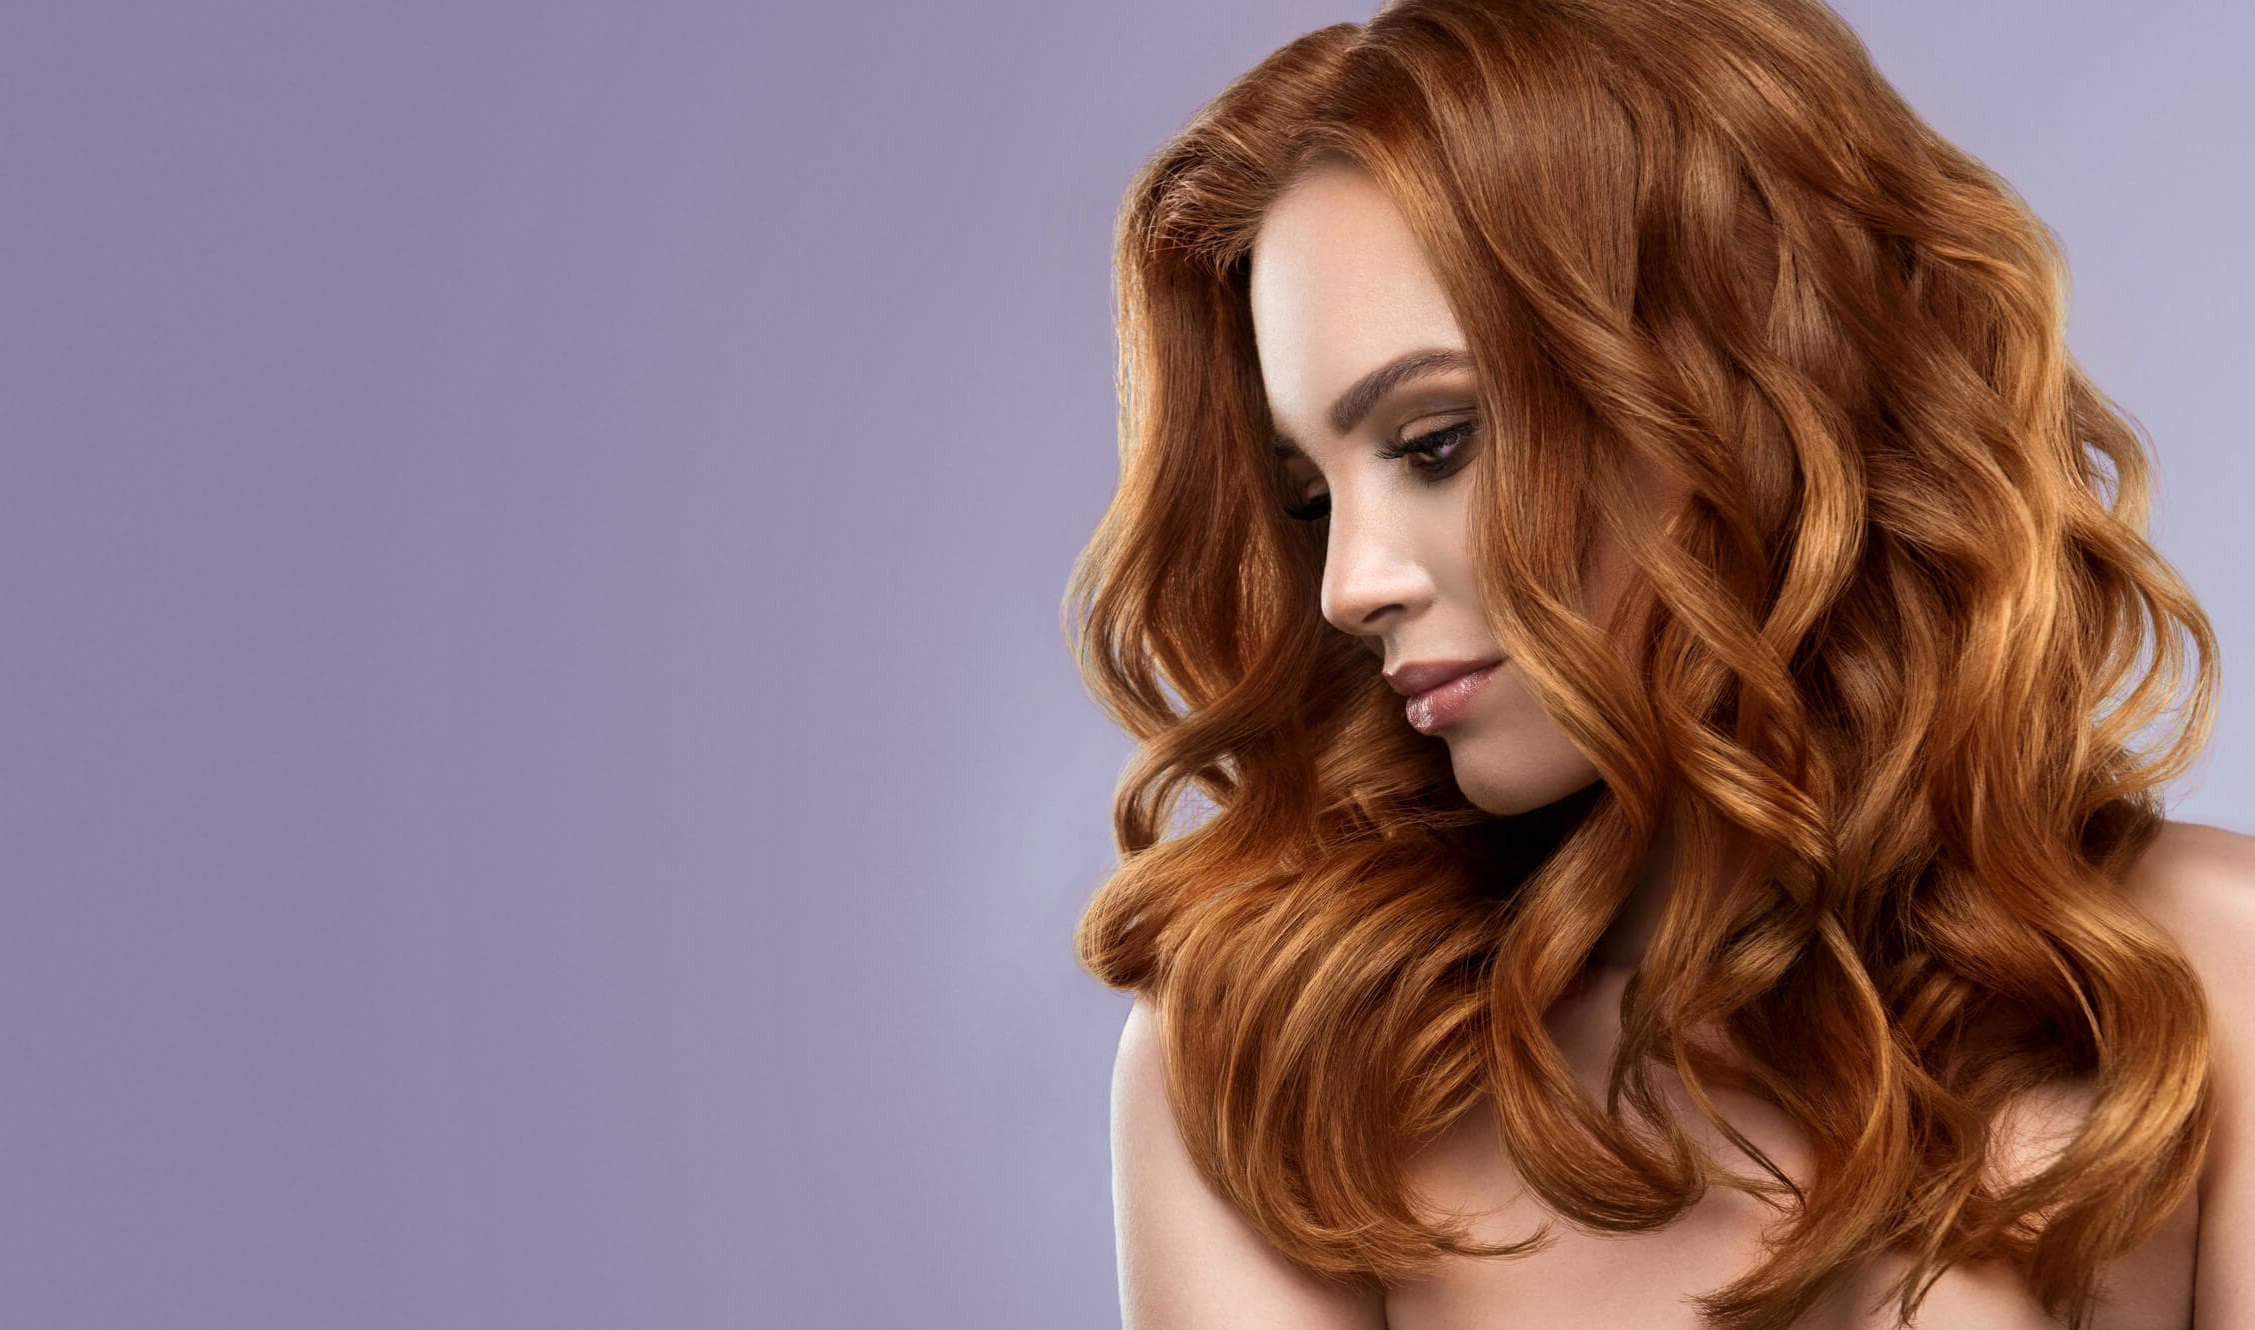 Secrets that Hairdresser won't tell you at any cost